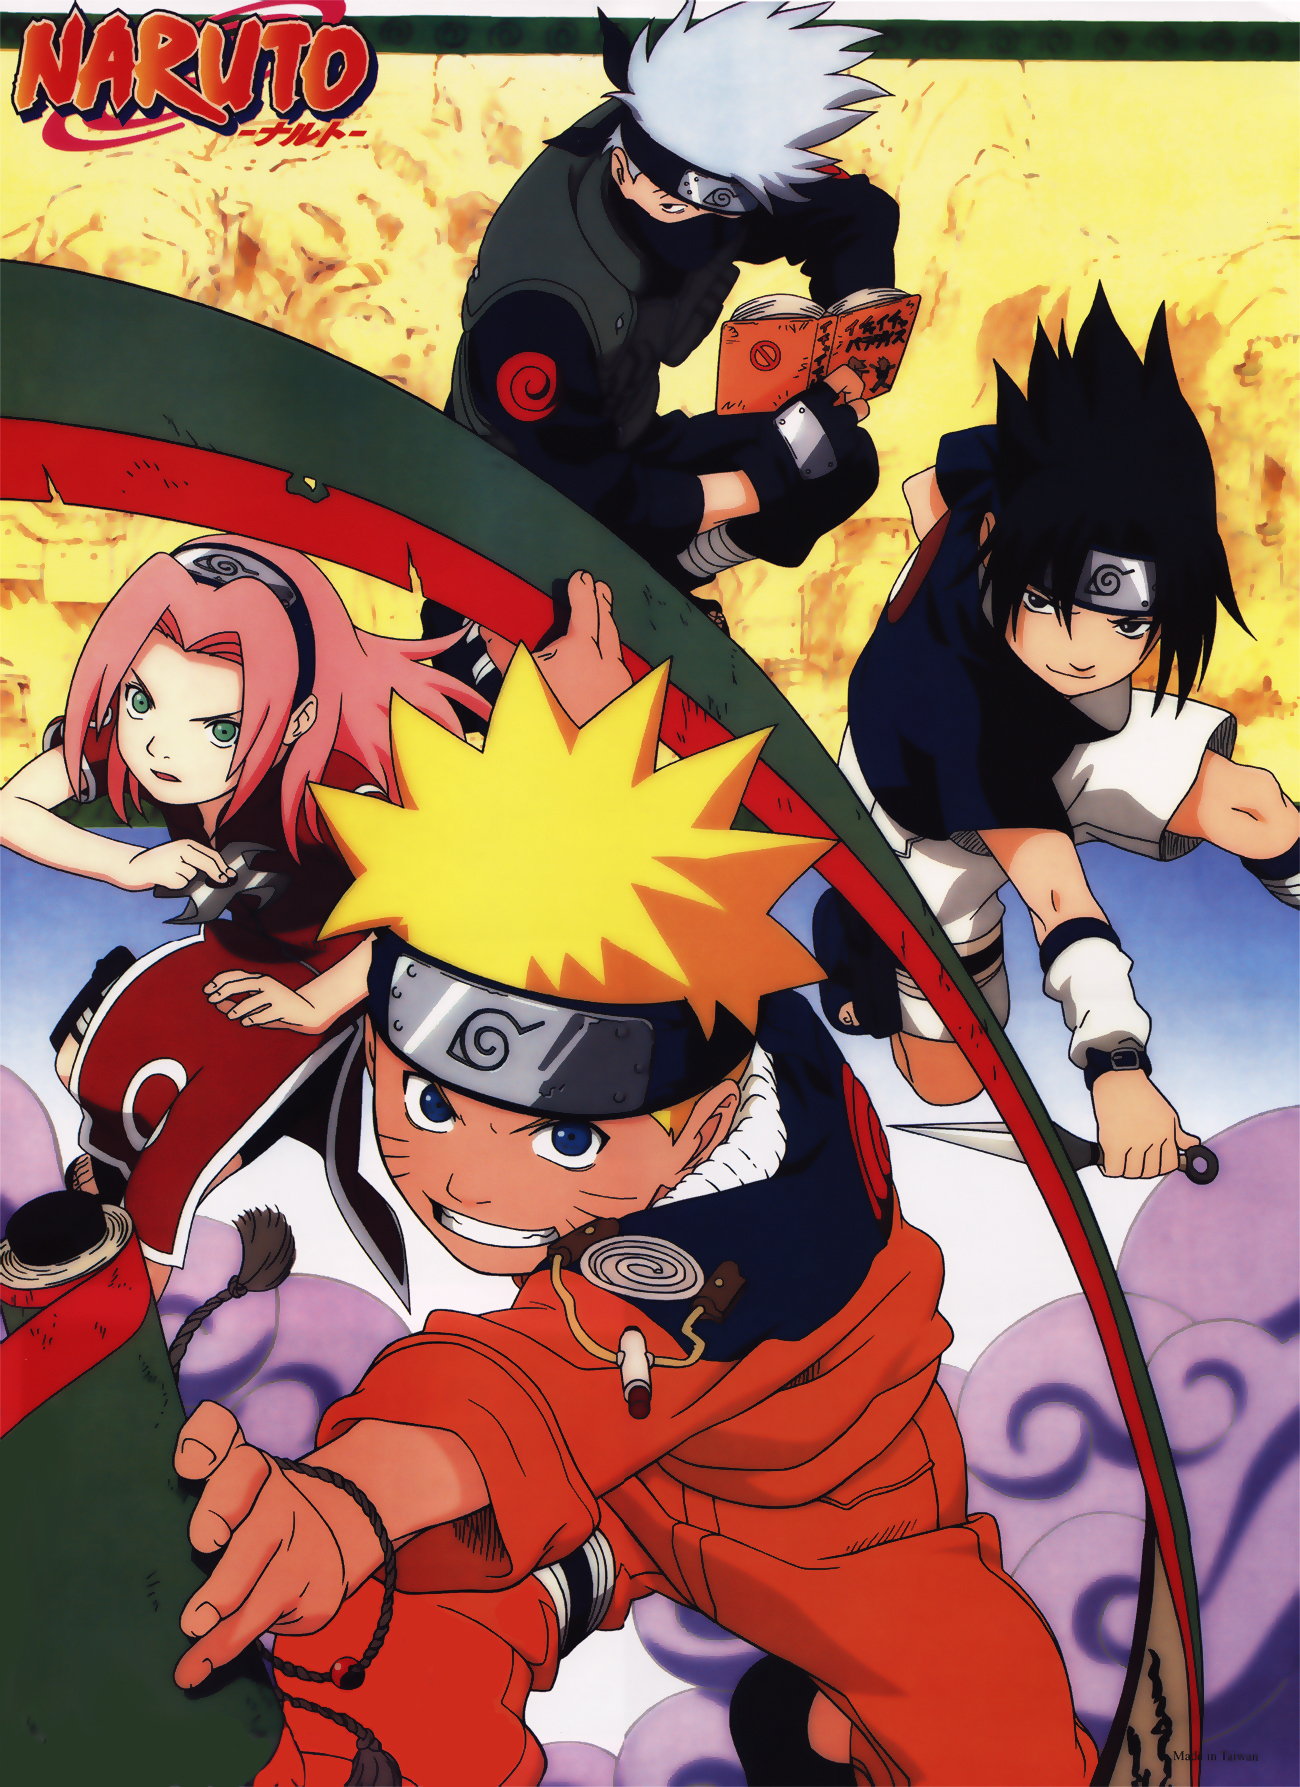 Team 7 Poses with a Ninja Scroll, Ninja Tools, and Icha Icha Paradise